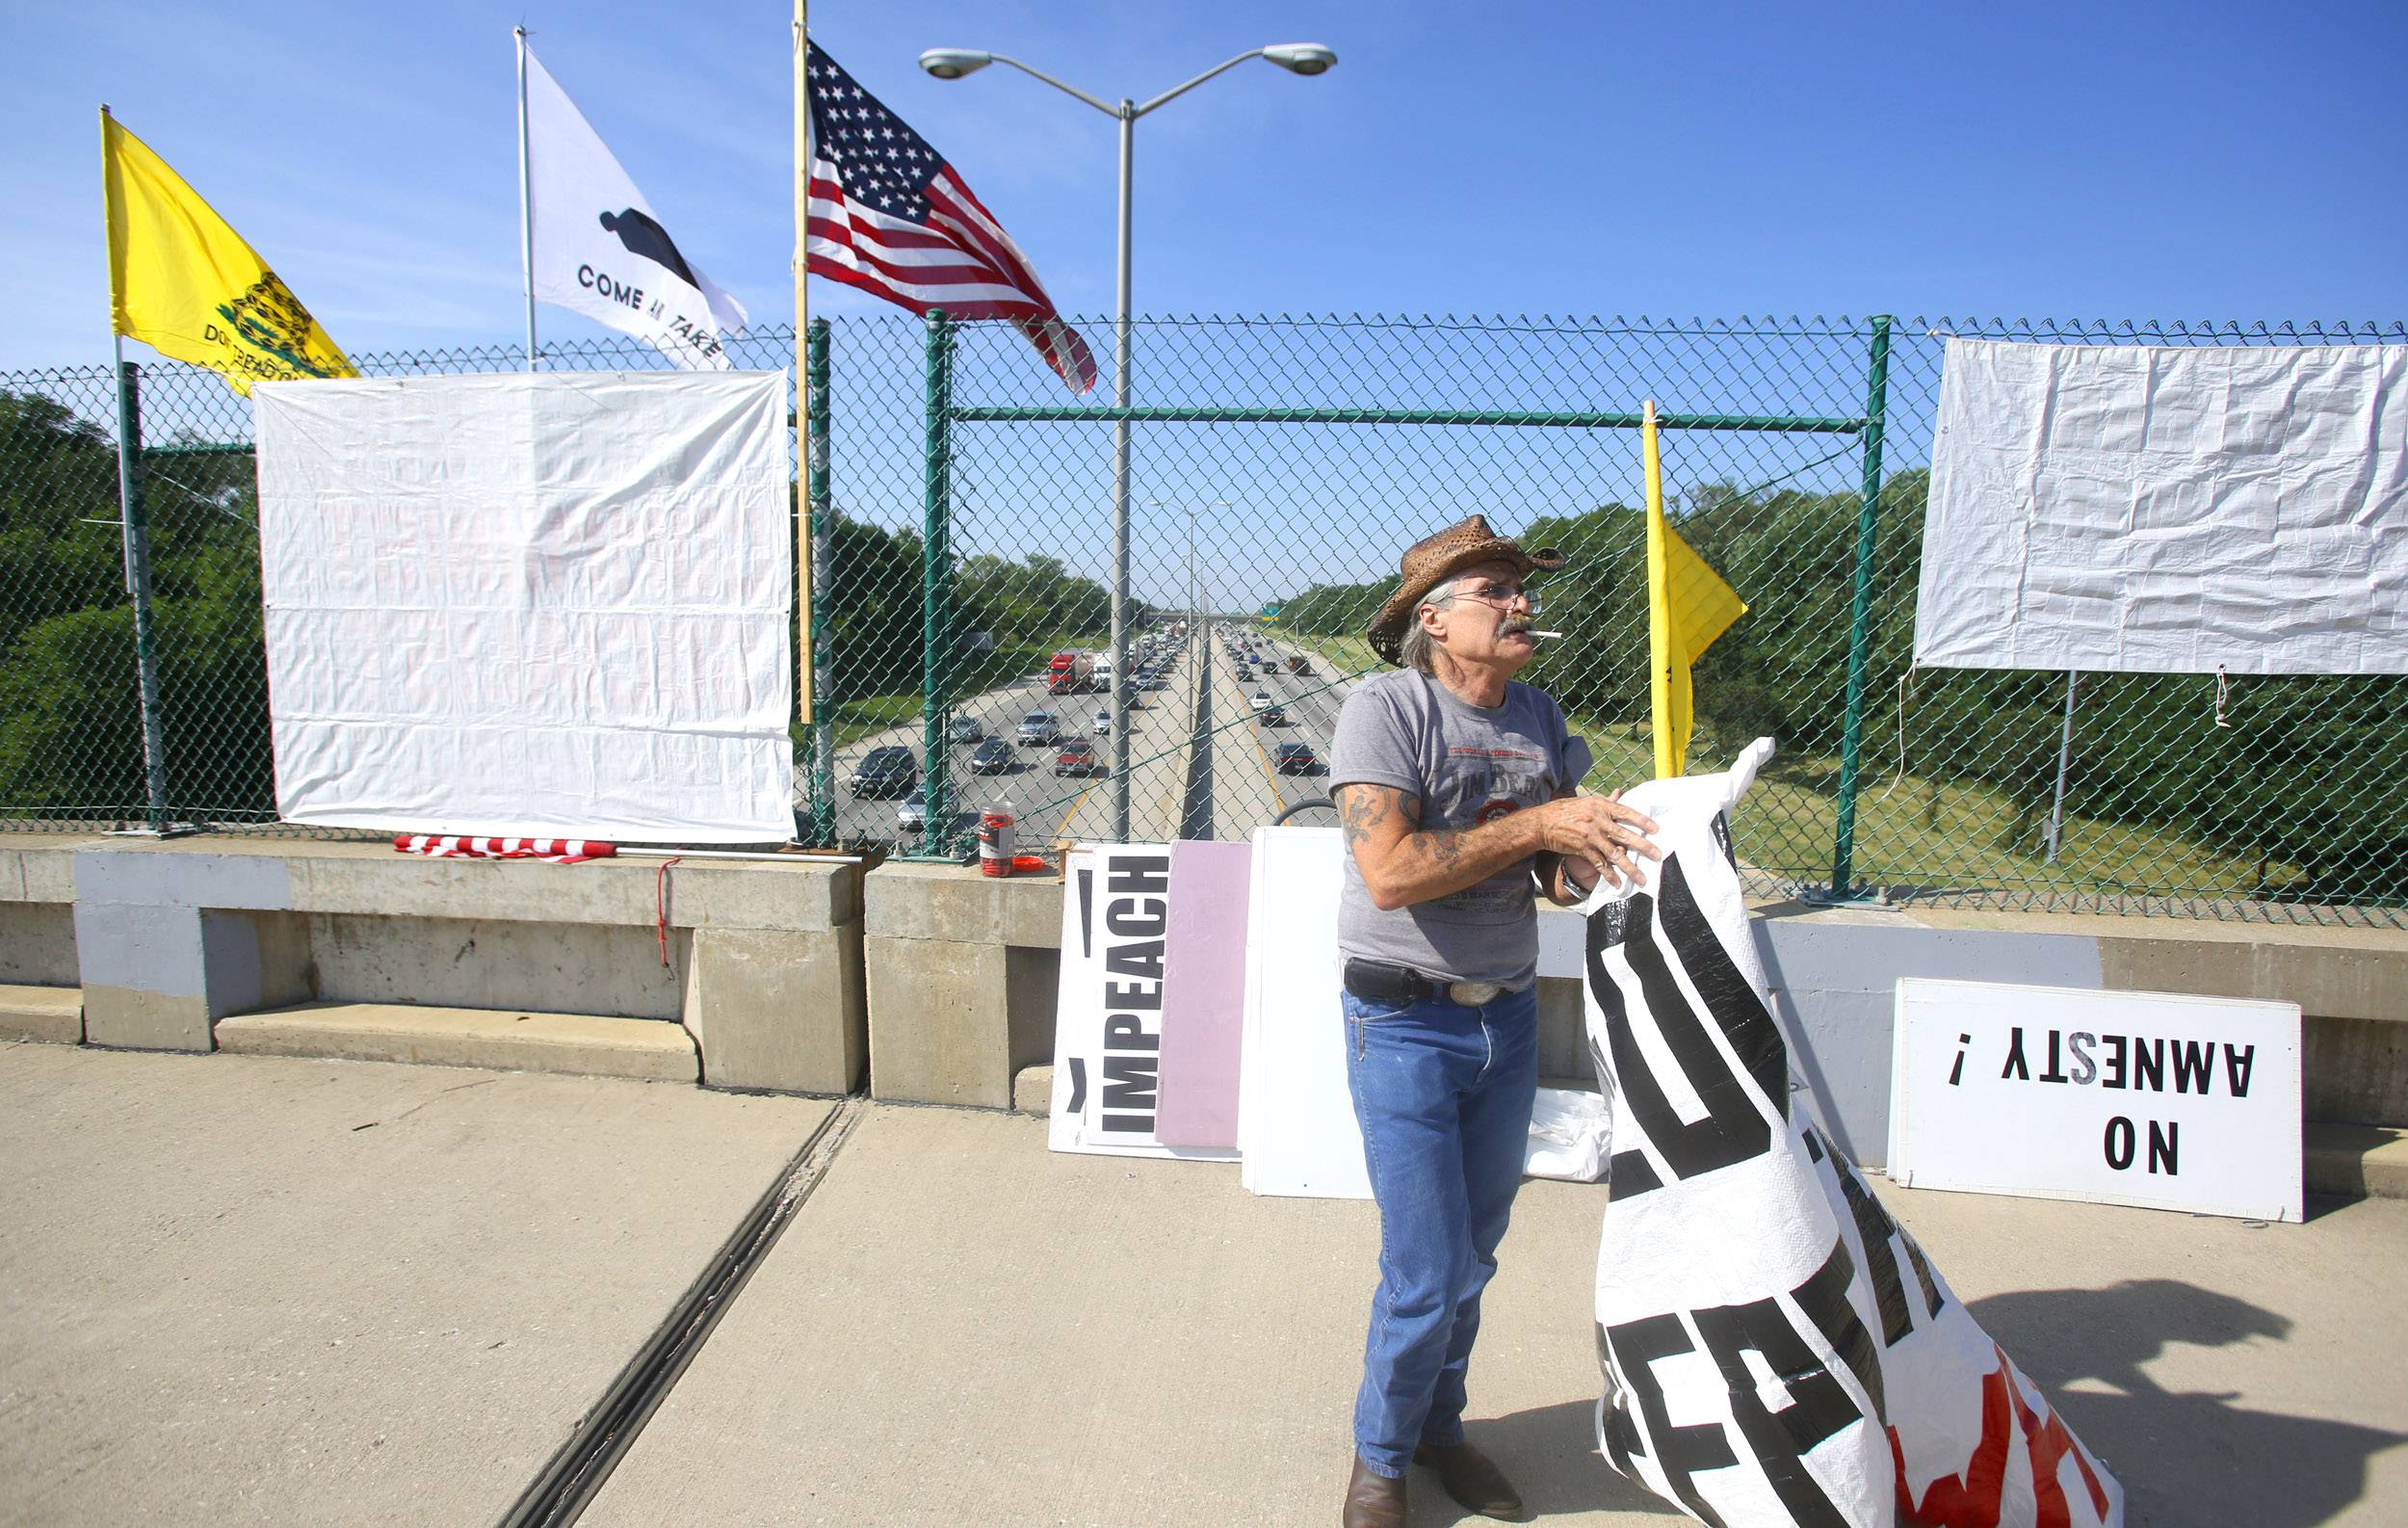 Pyke: Are I-355 traffic delays the protesters' fault?